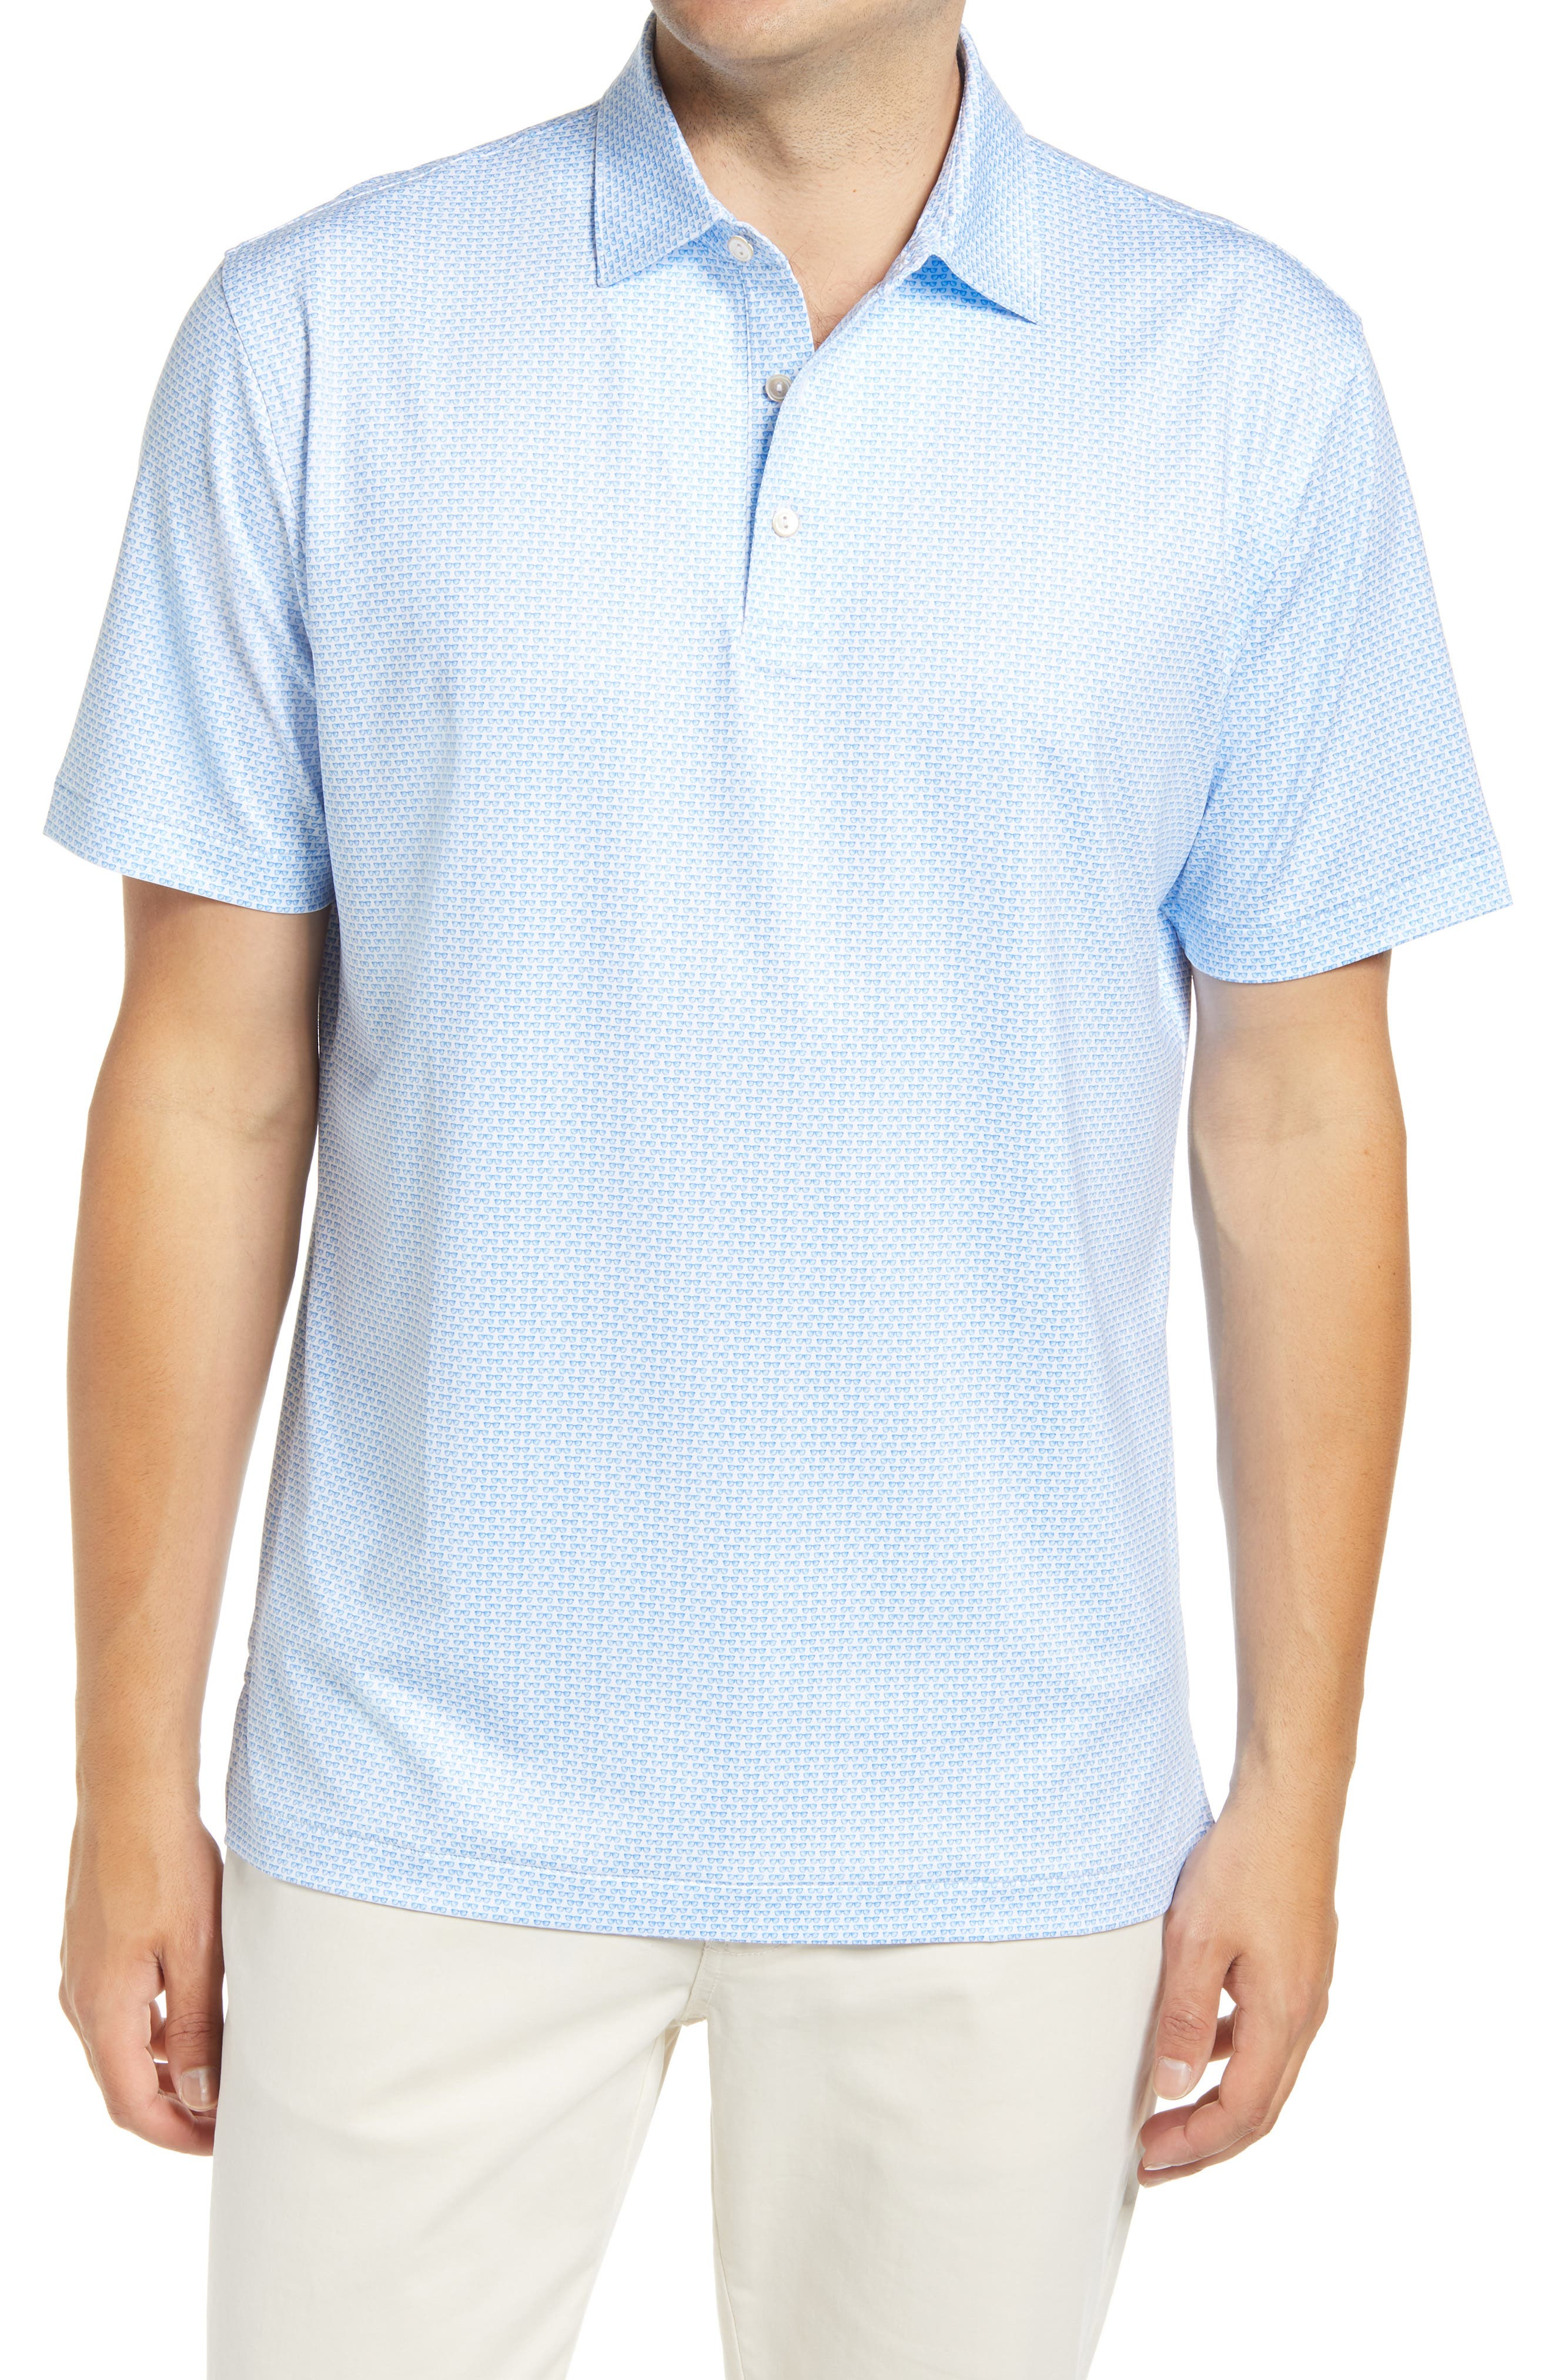 Stretchy, moisture-wicking fabric keeps up with you from links to lunch in an all-activity golf polo sporting enhanced UV protection and a tiny sunglasses print. Style Name: Peter Millar Sasser Shades Print Performance Polo. Style Number: 6089525. Available in stores.